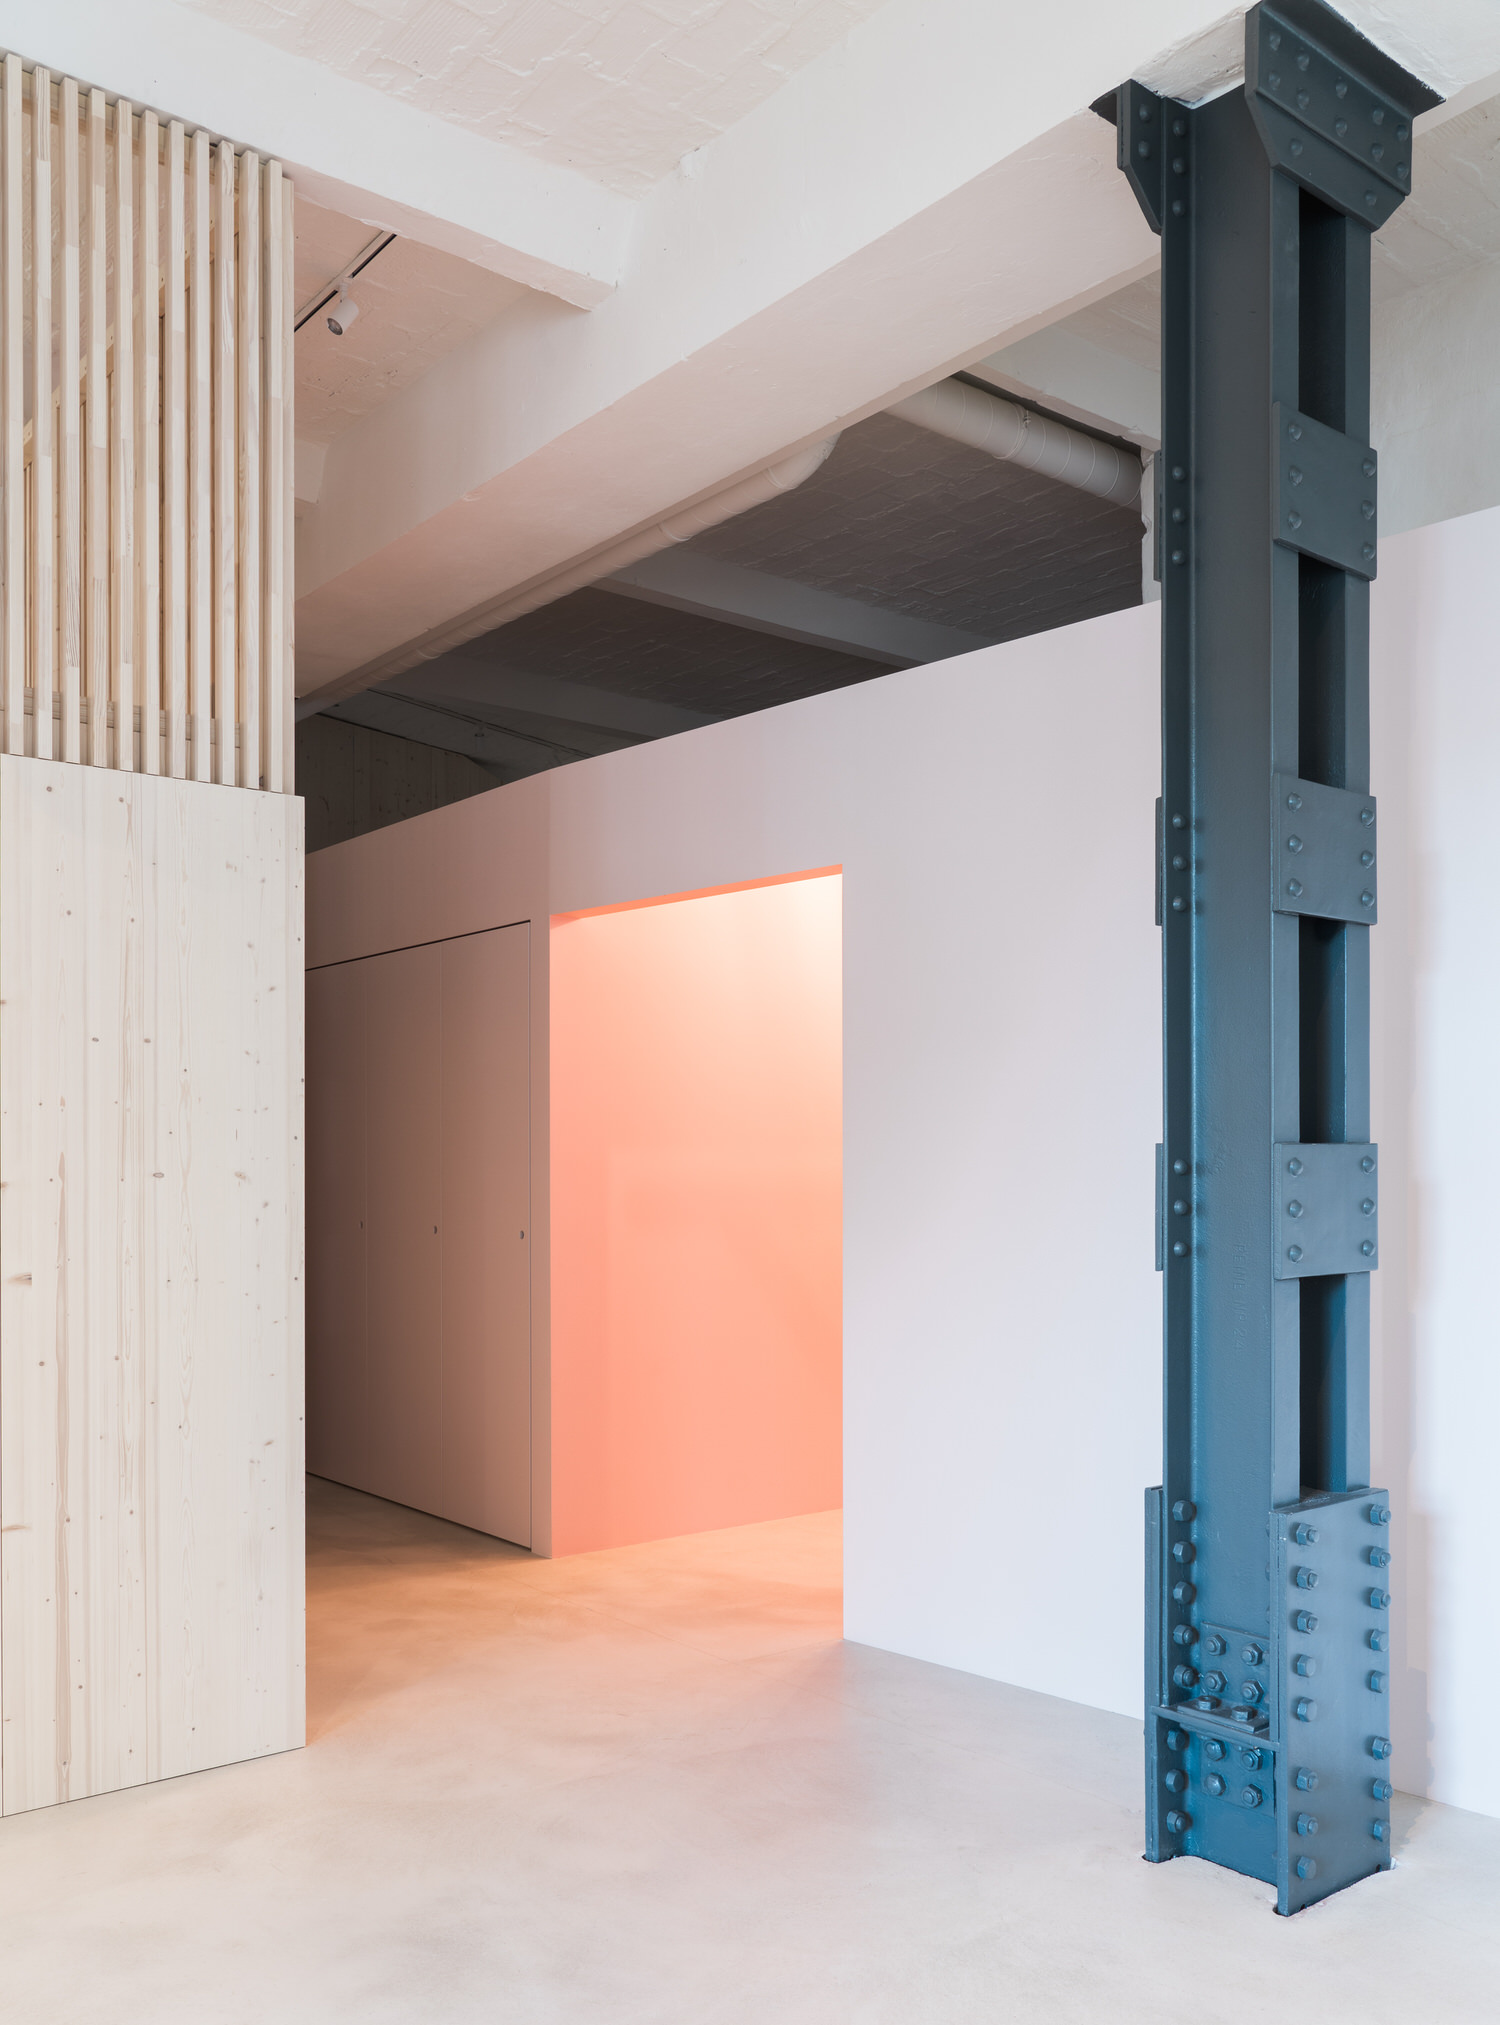 Batek Architekten, SCH52 Loft Berlin, Photo Marcus Wend | Yellowtrace